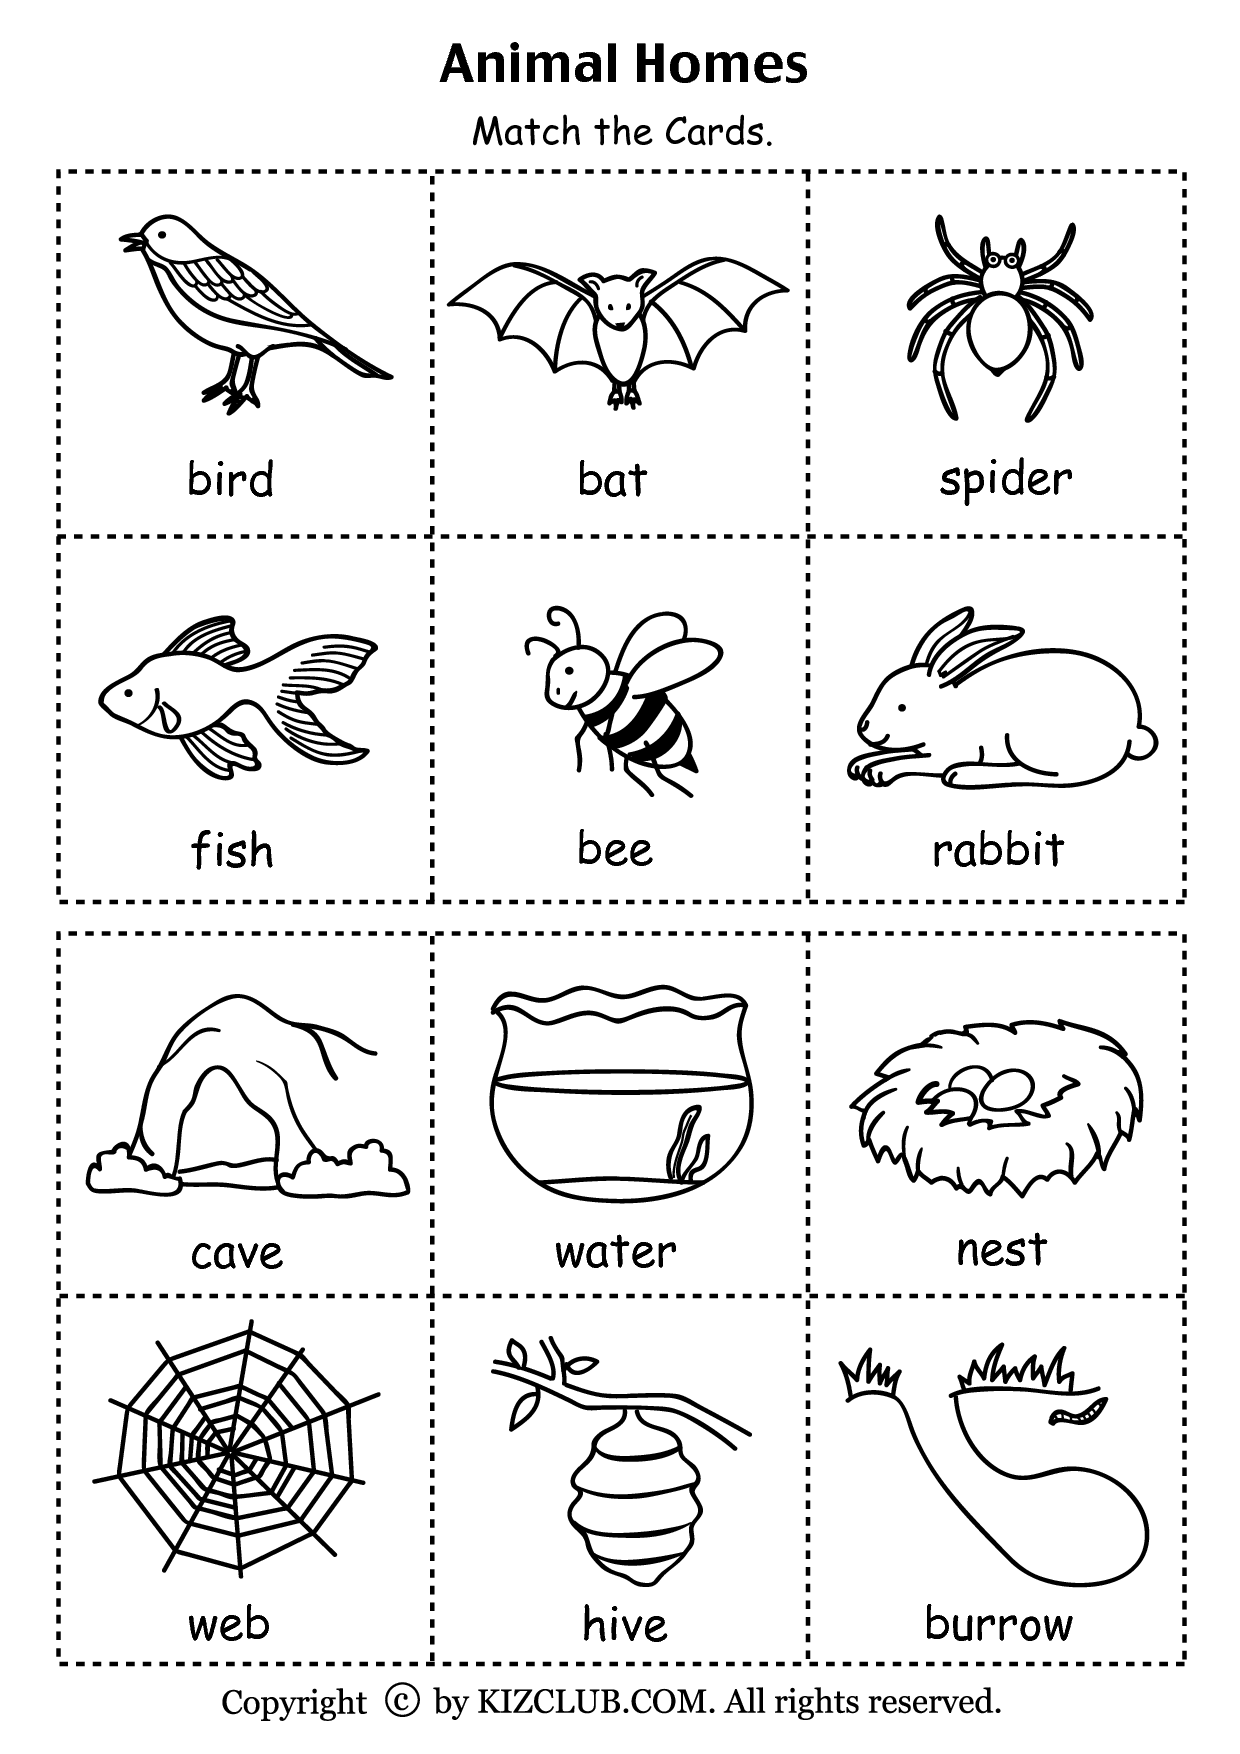 Uncategorized Animal Symmetry Worksheet animal homes pdf printable organization or everything else project kindergarten home box ideas